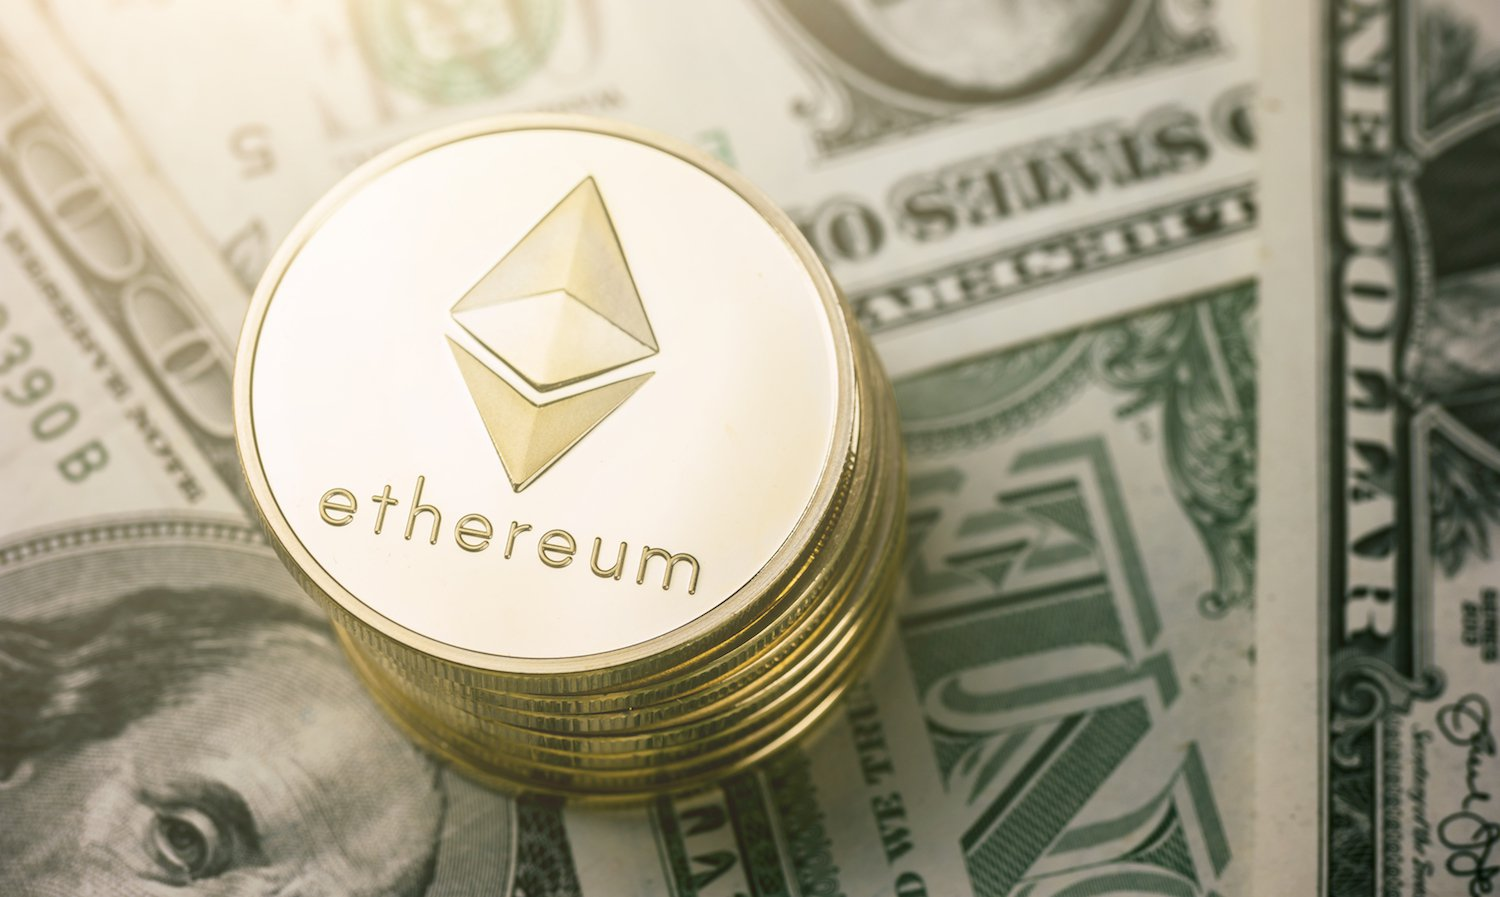 Crypto Venture Firm to Invest 200K Ether in US Startups